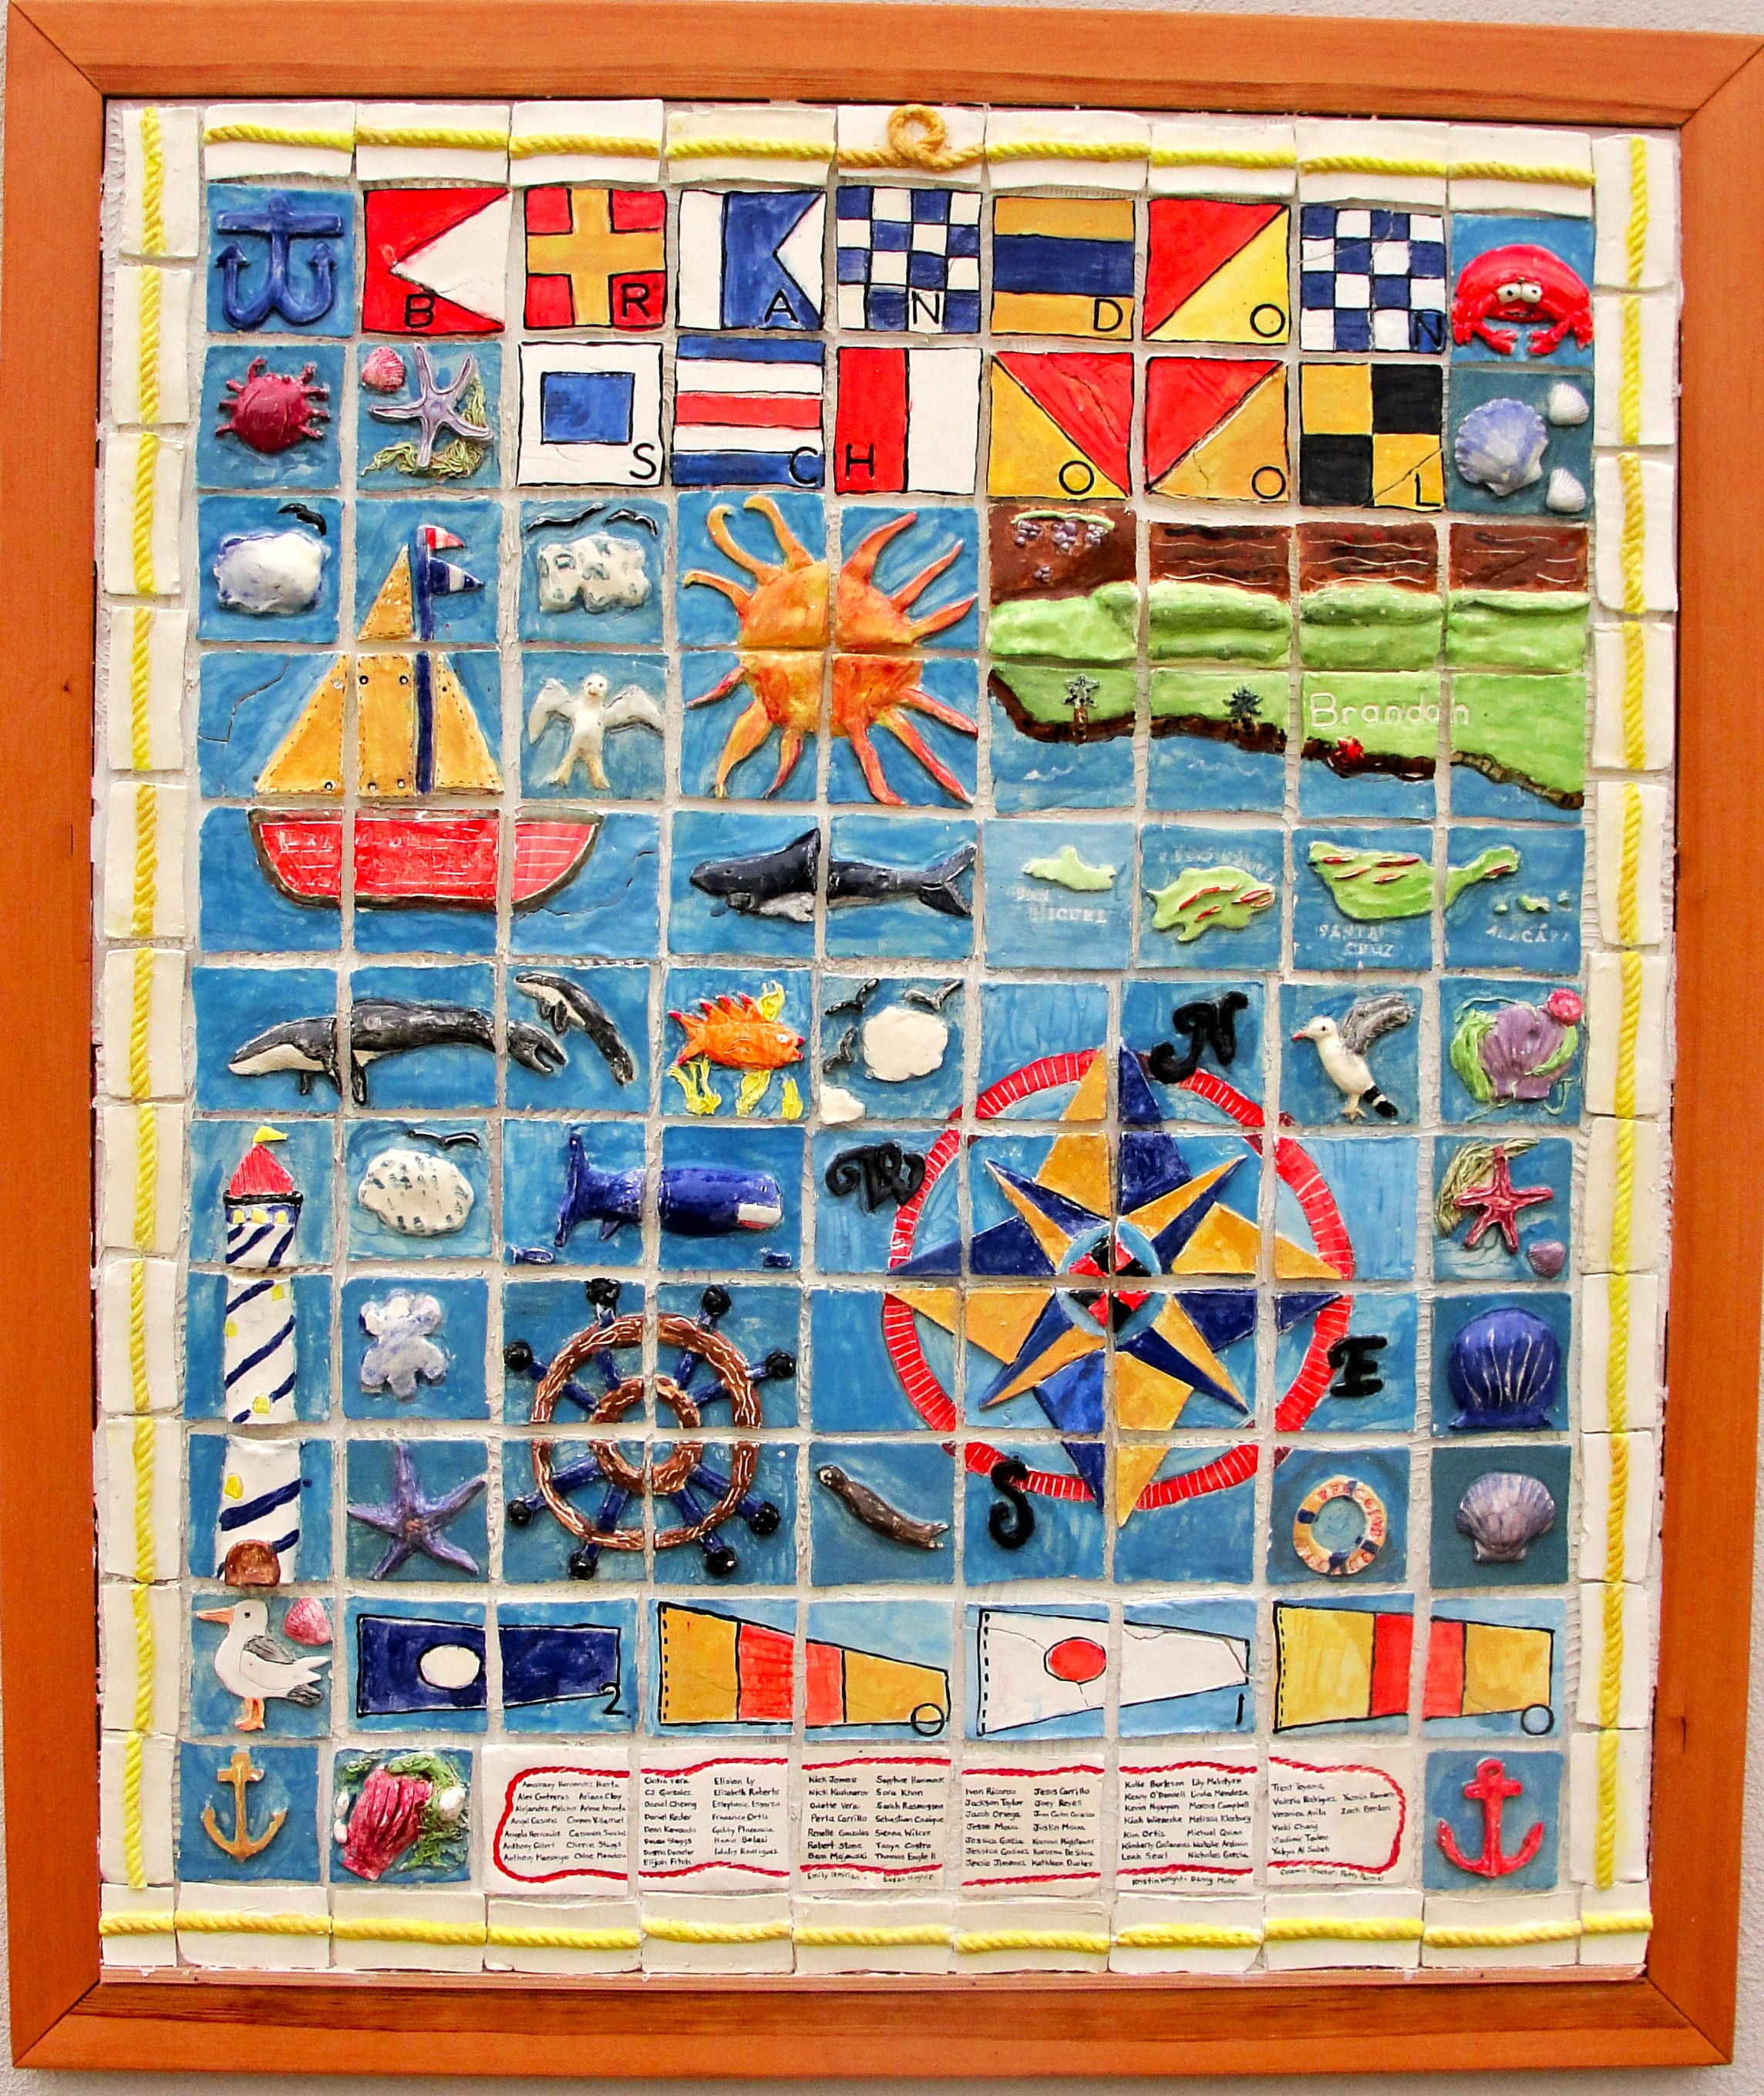 Nautical ceramic tile mural collaborative art project for for Artwork on tile ceramic mural